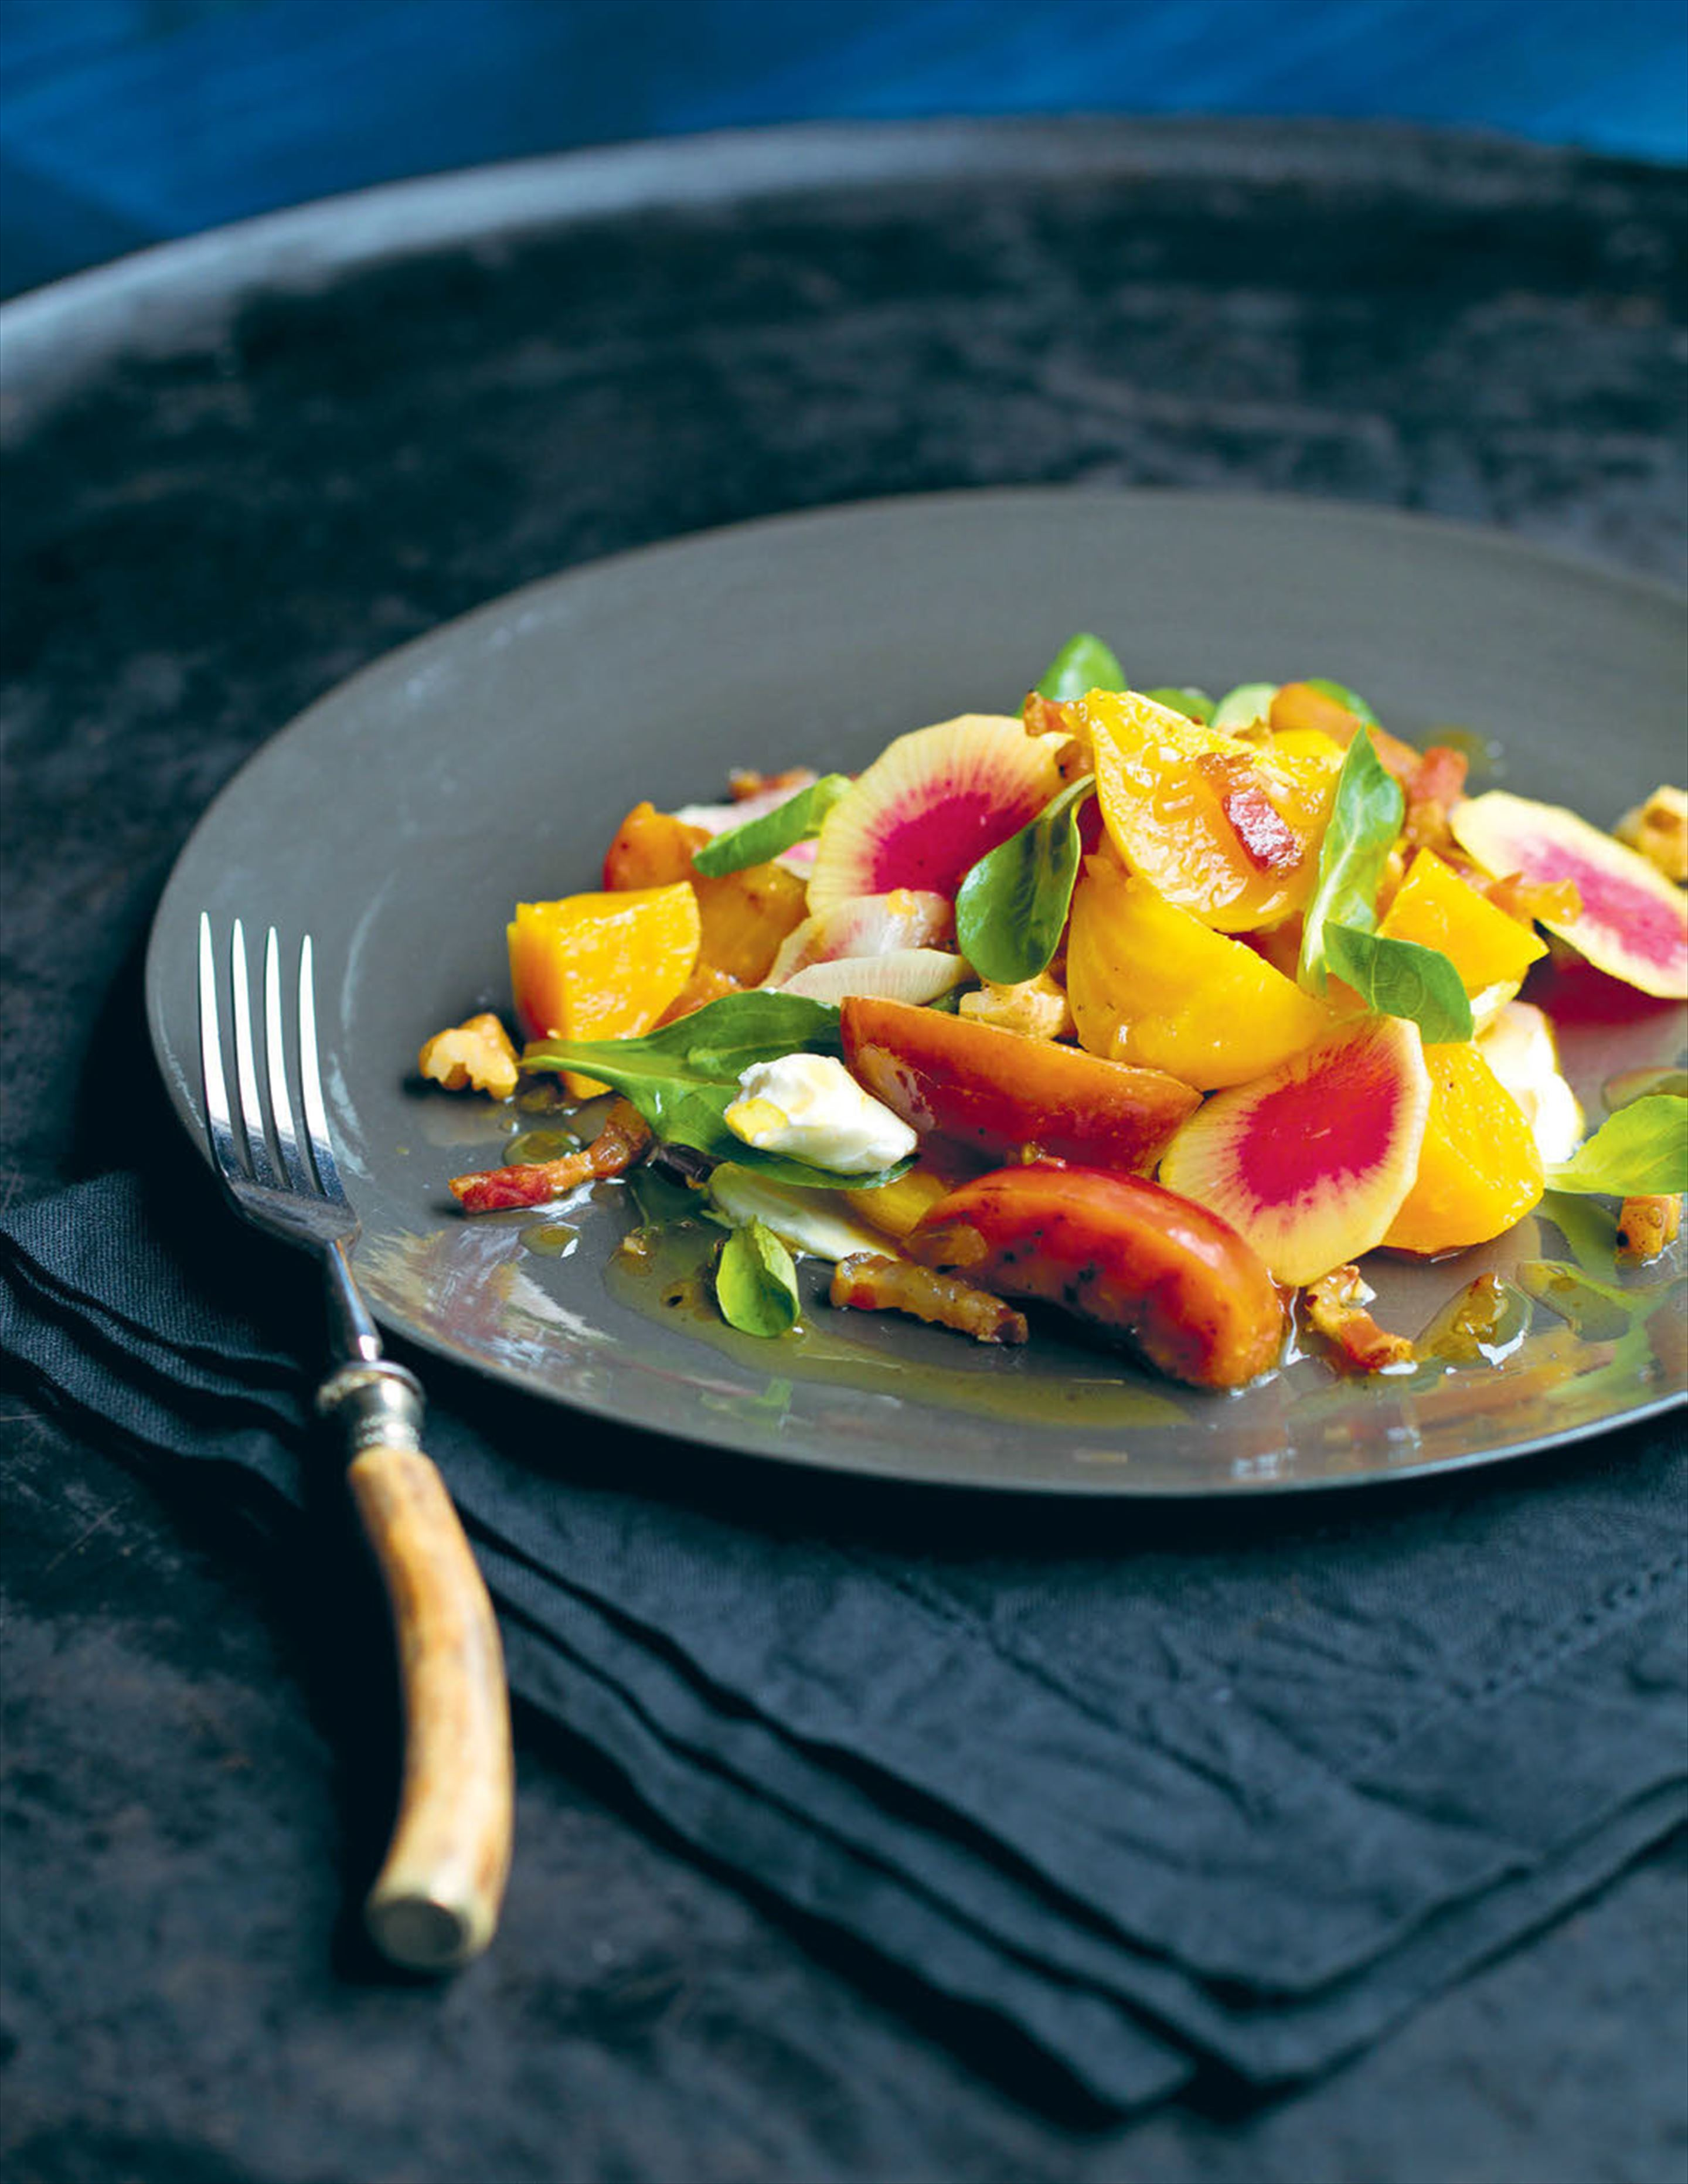 Salad of golden beetroot, pickled plum, pancetta and maple syrup